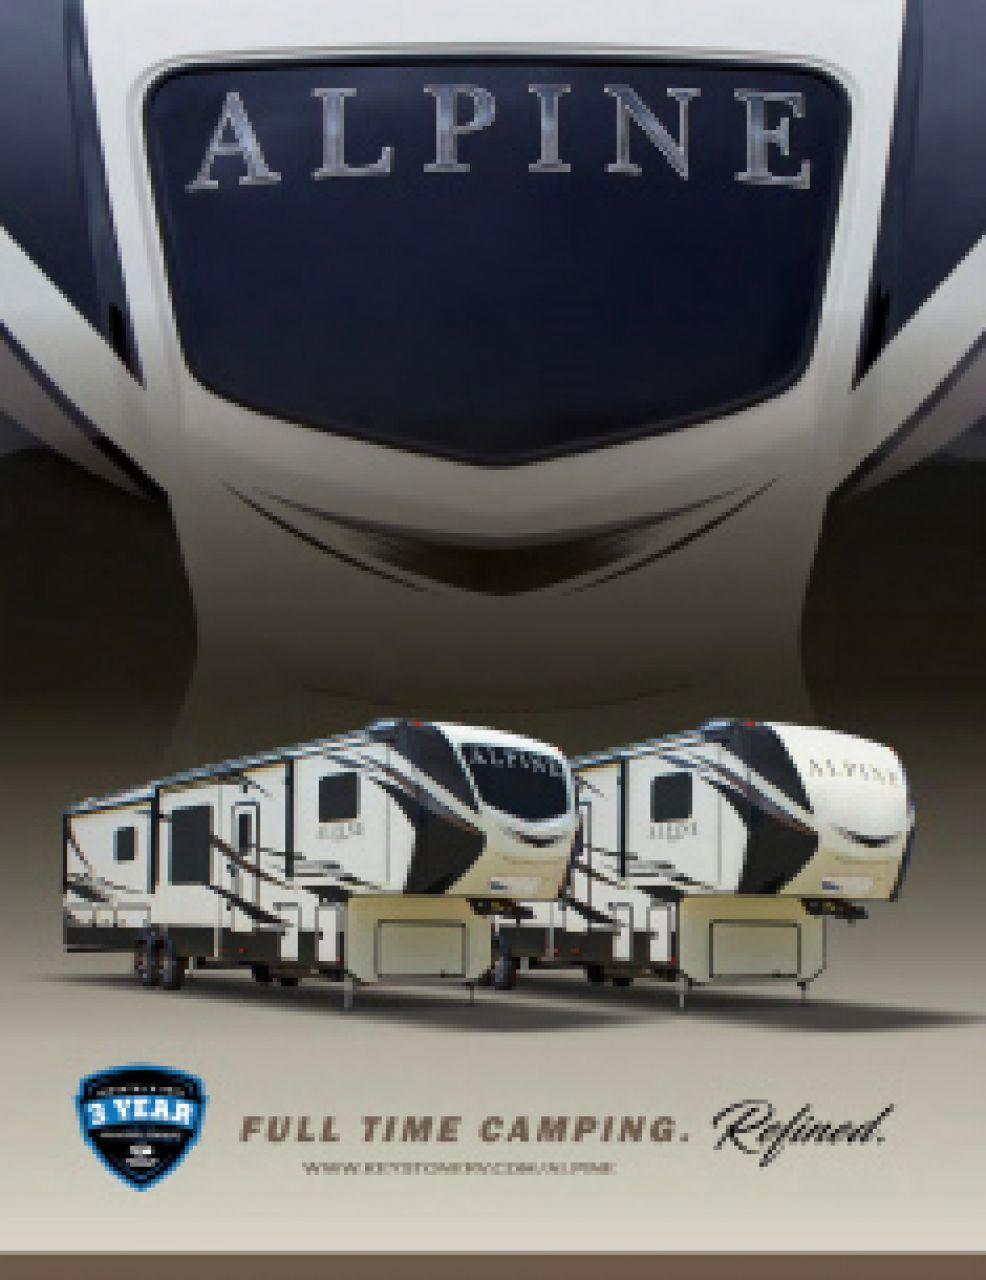 2019 Keystone Alpine RV Brochure Cover